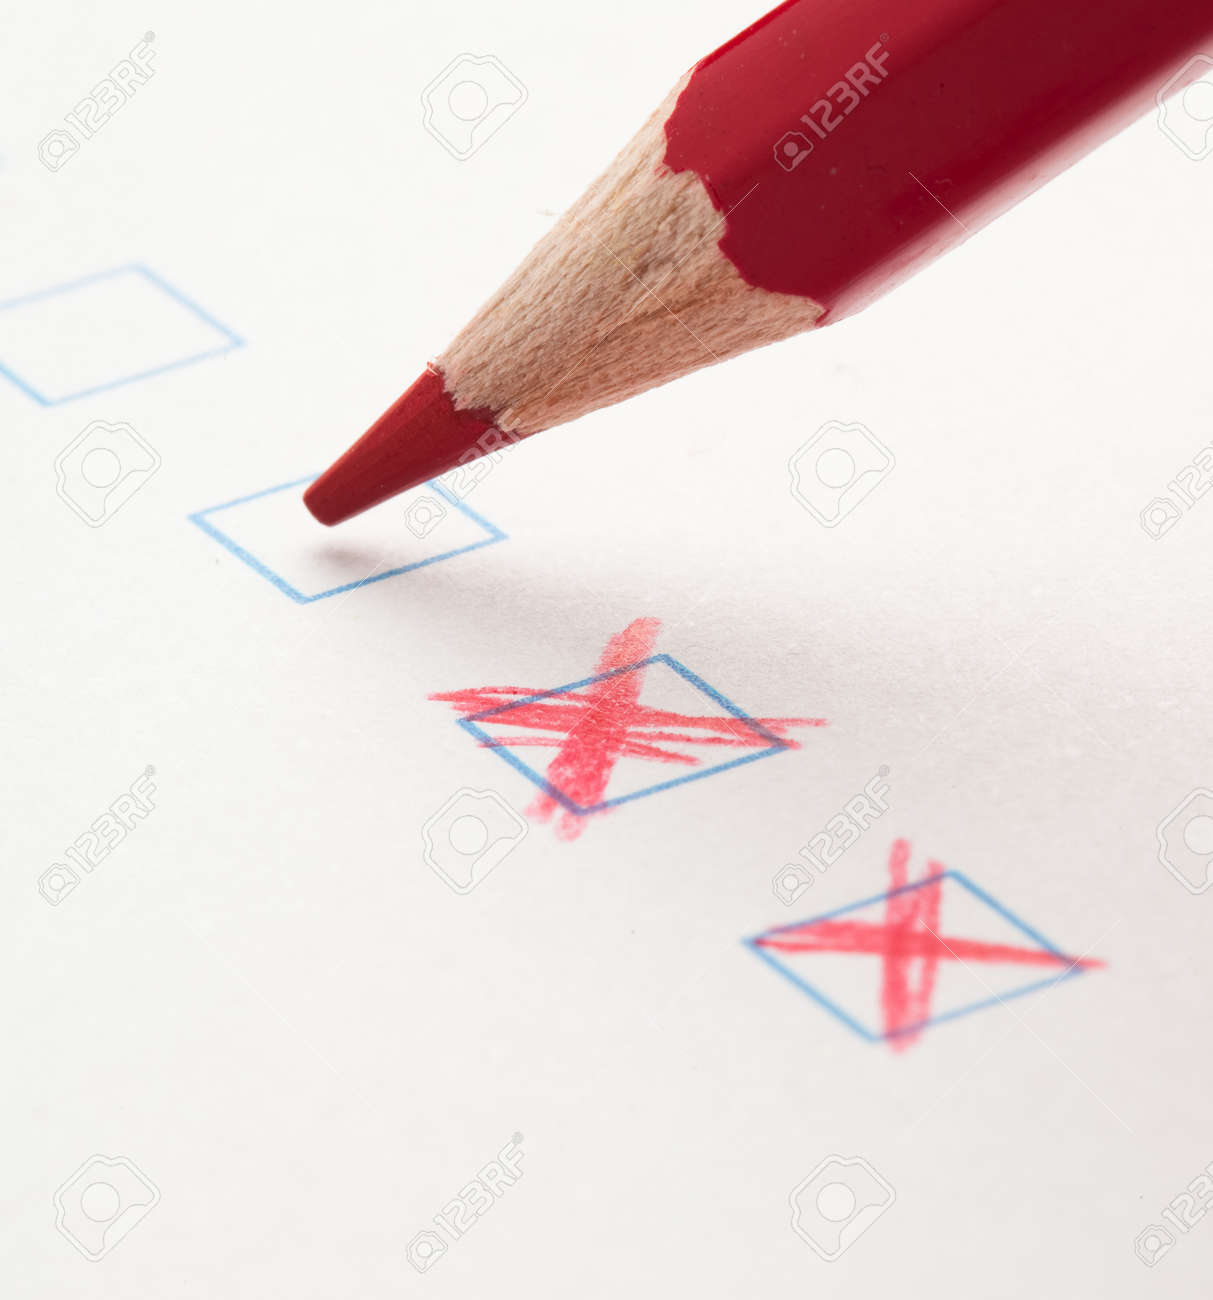 test check box and red crayons, closeup photo Stock Photo - 10382450